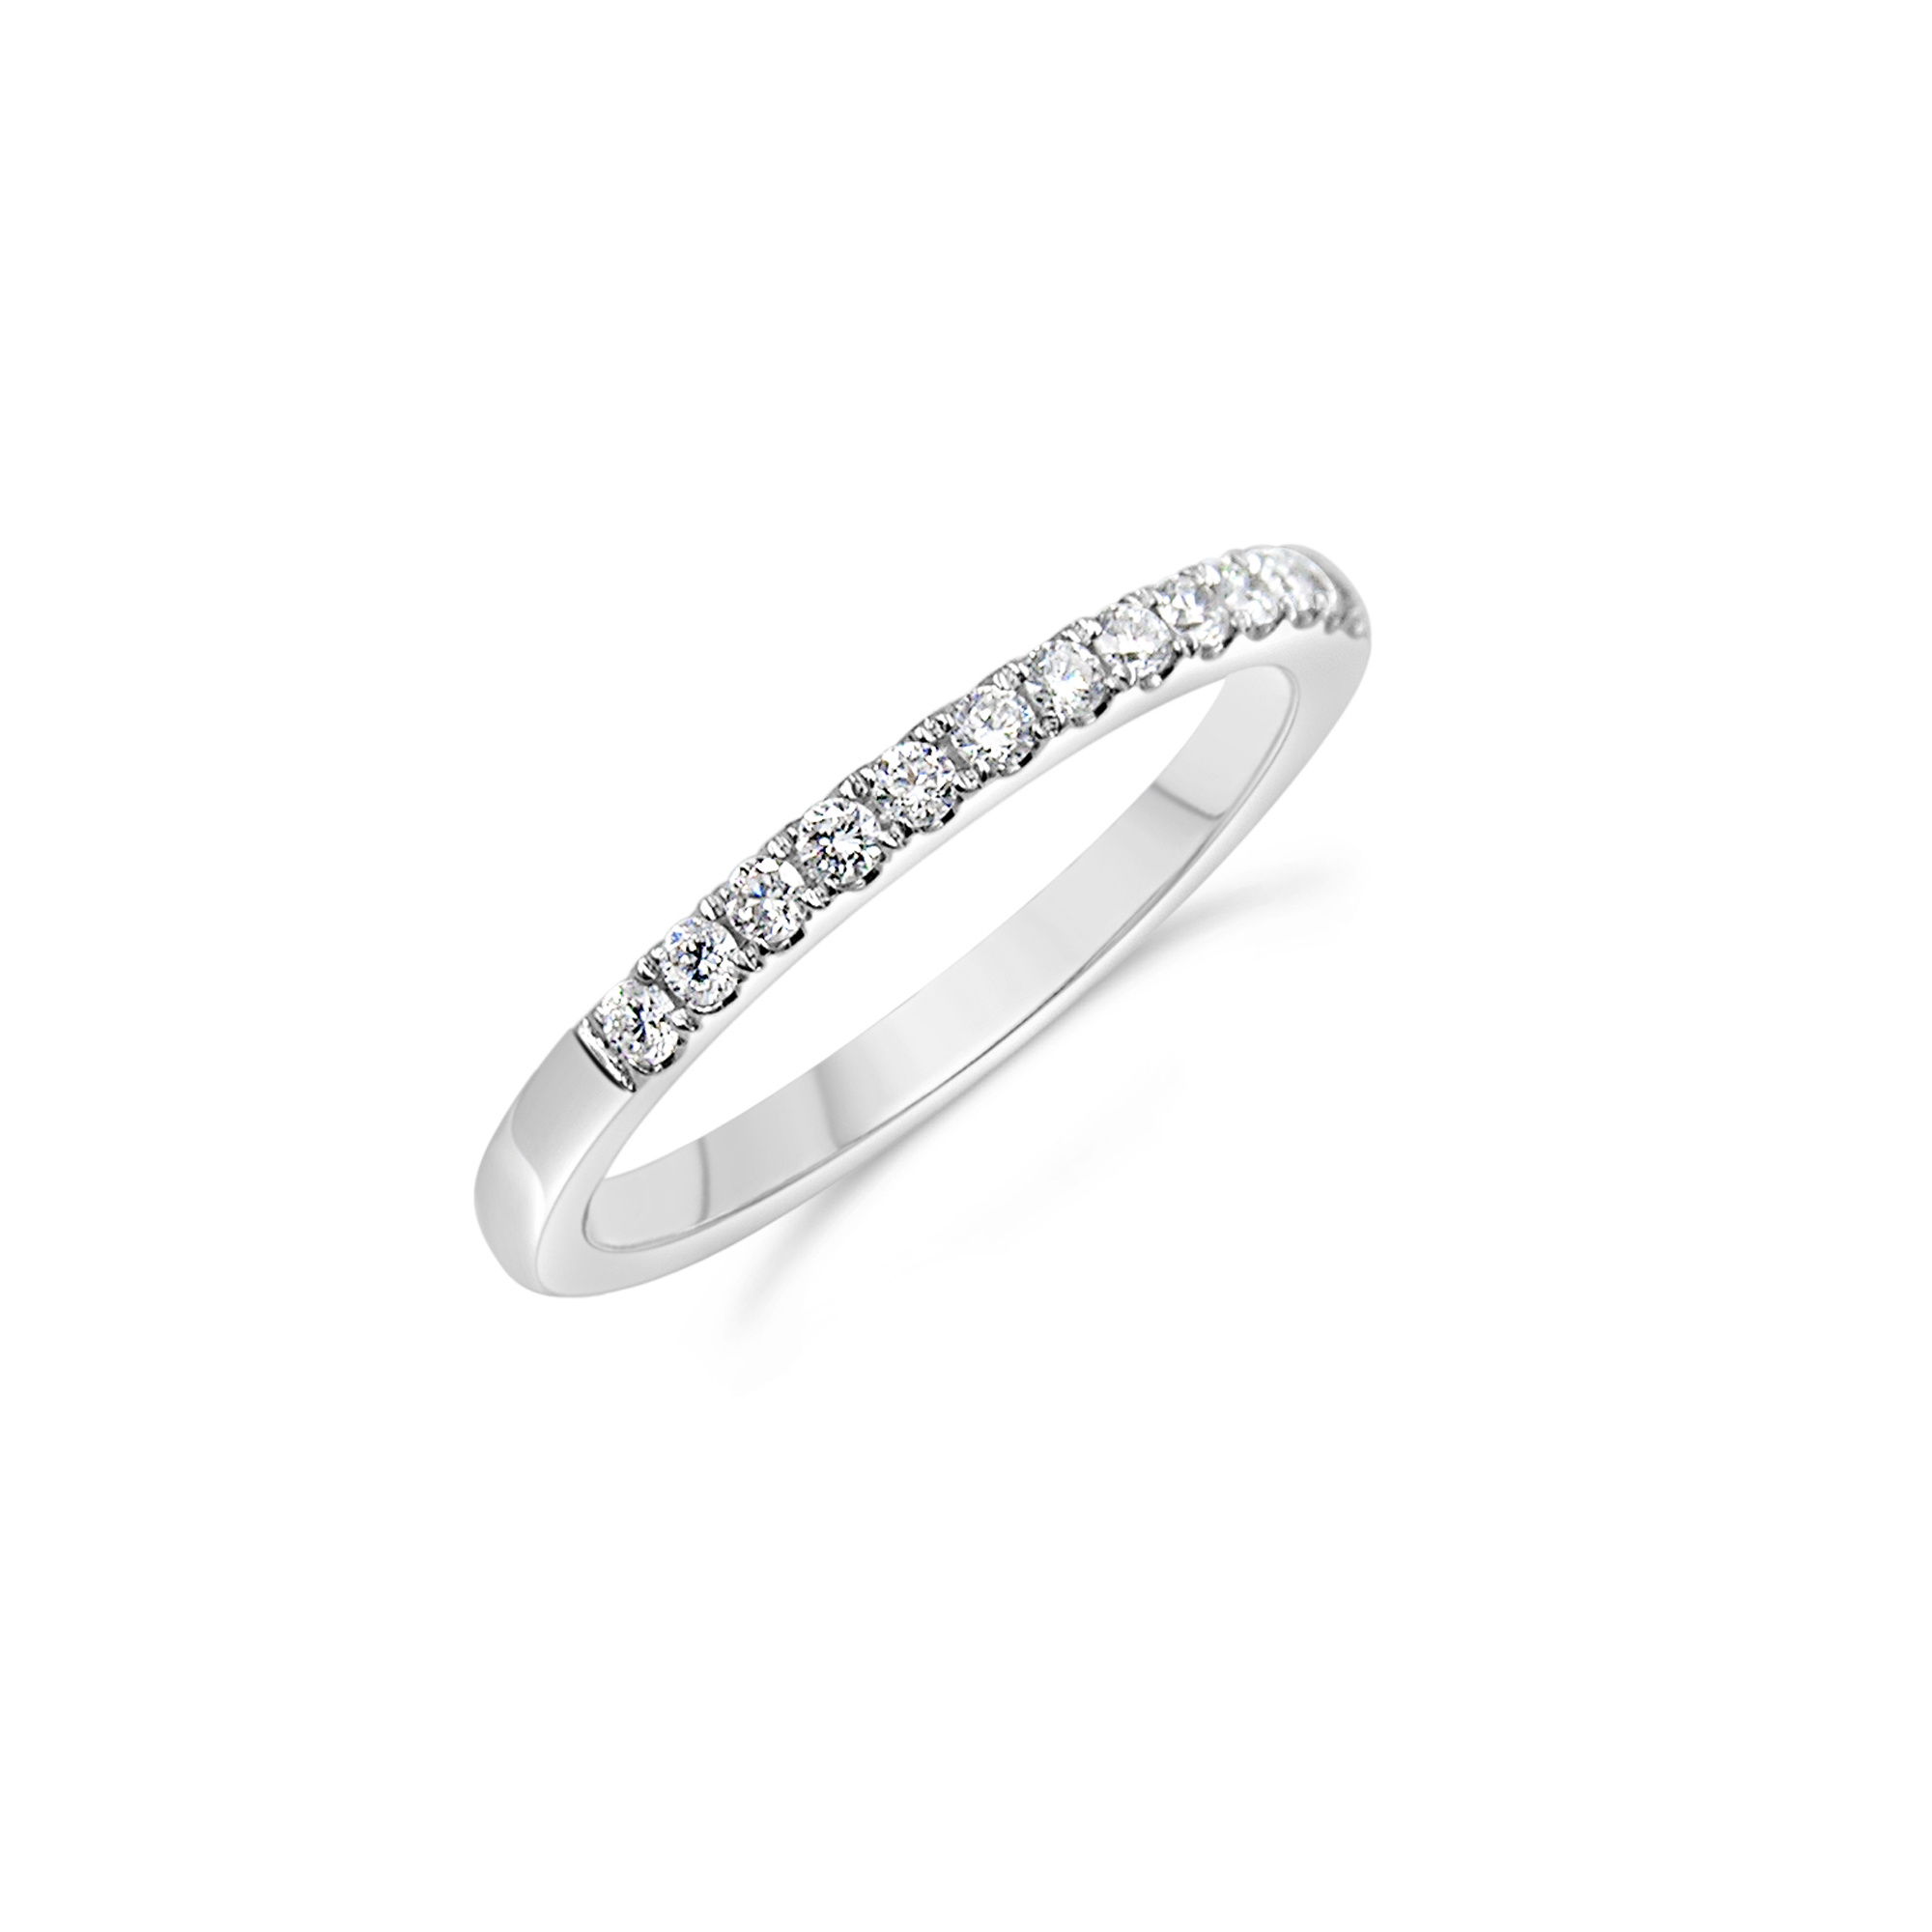 18k white gold ring with 0.34 ct diamonds